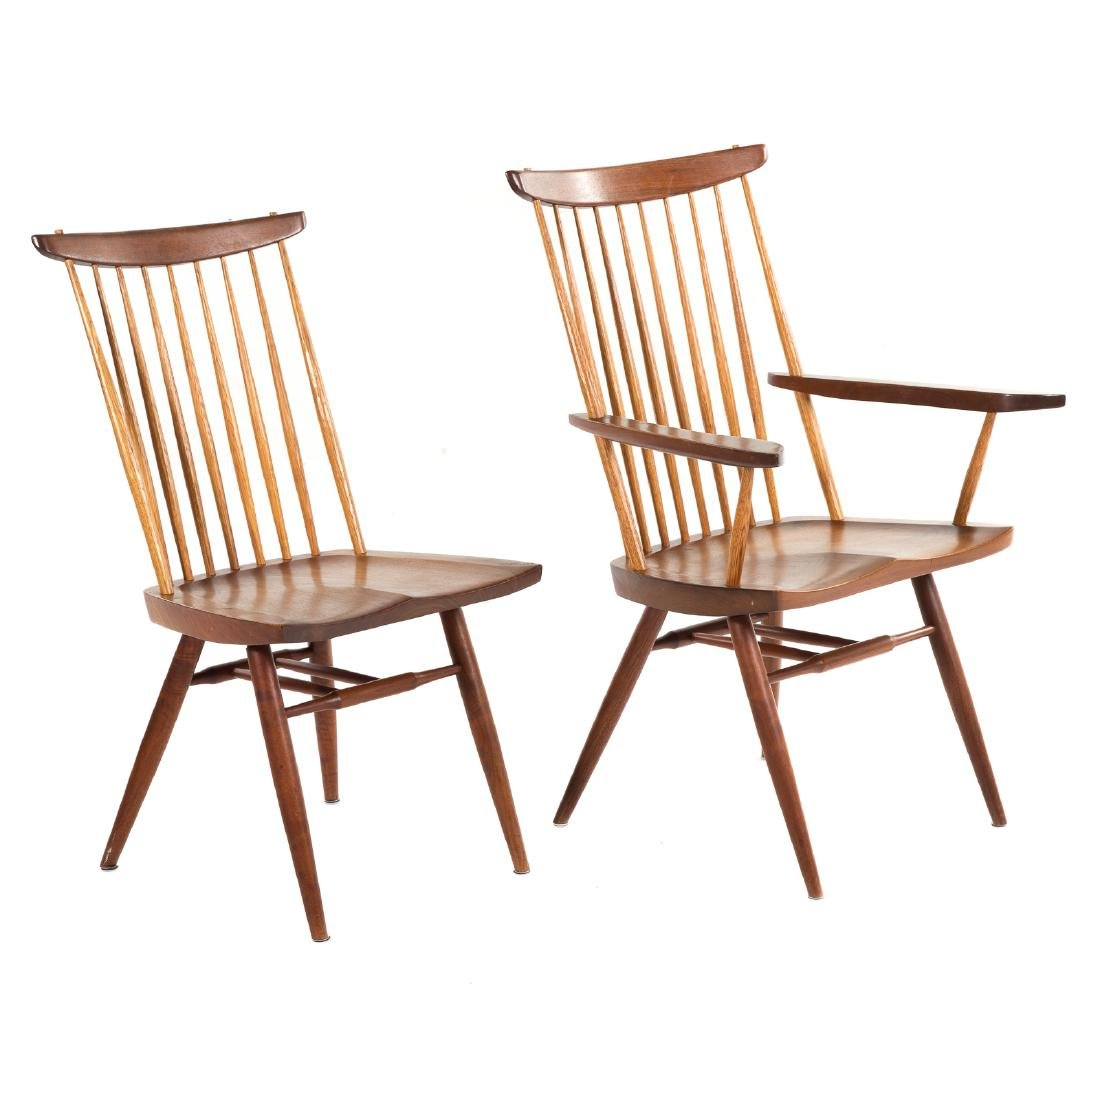 Set of Eight George Nakashima New Dining Chairs - 2